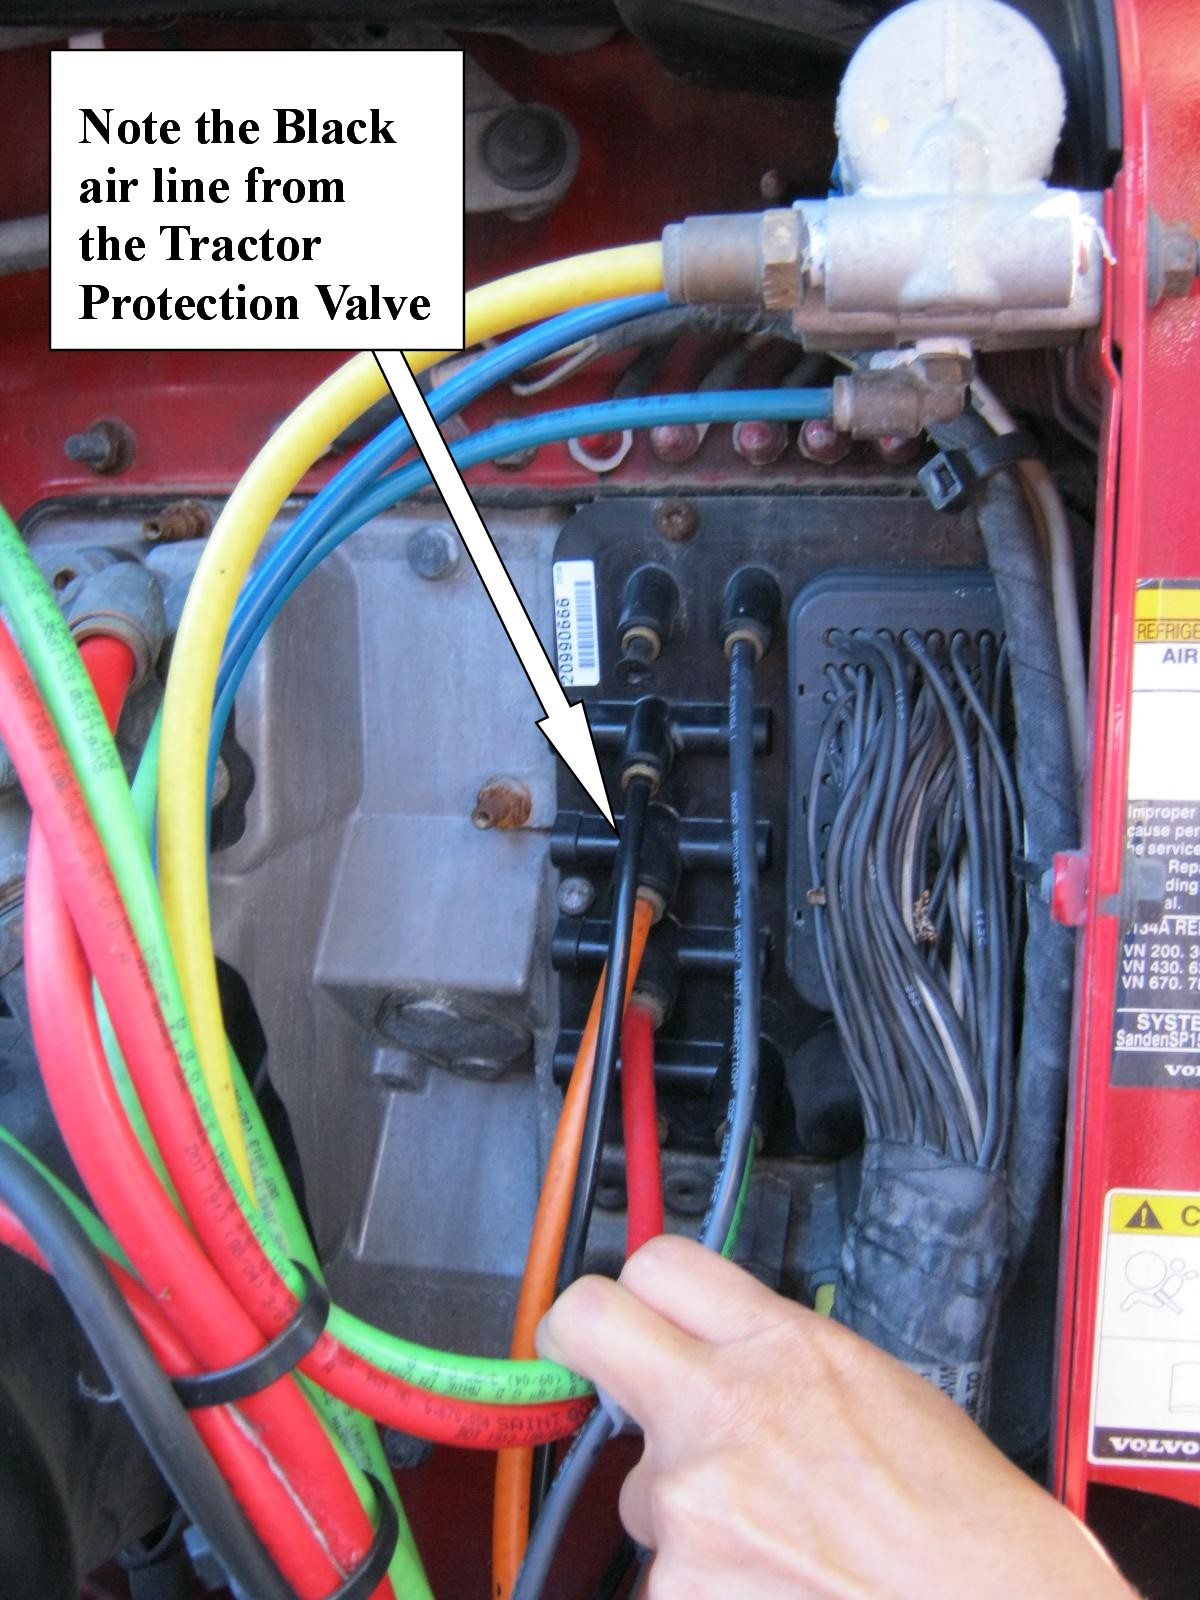 hayes brakesmart maxbrake controllers heavy haulers rv resource the photo was supplied by d and j doug and it shows the black air line from the tractor protection valve as described in the schematic above